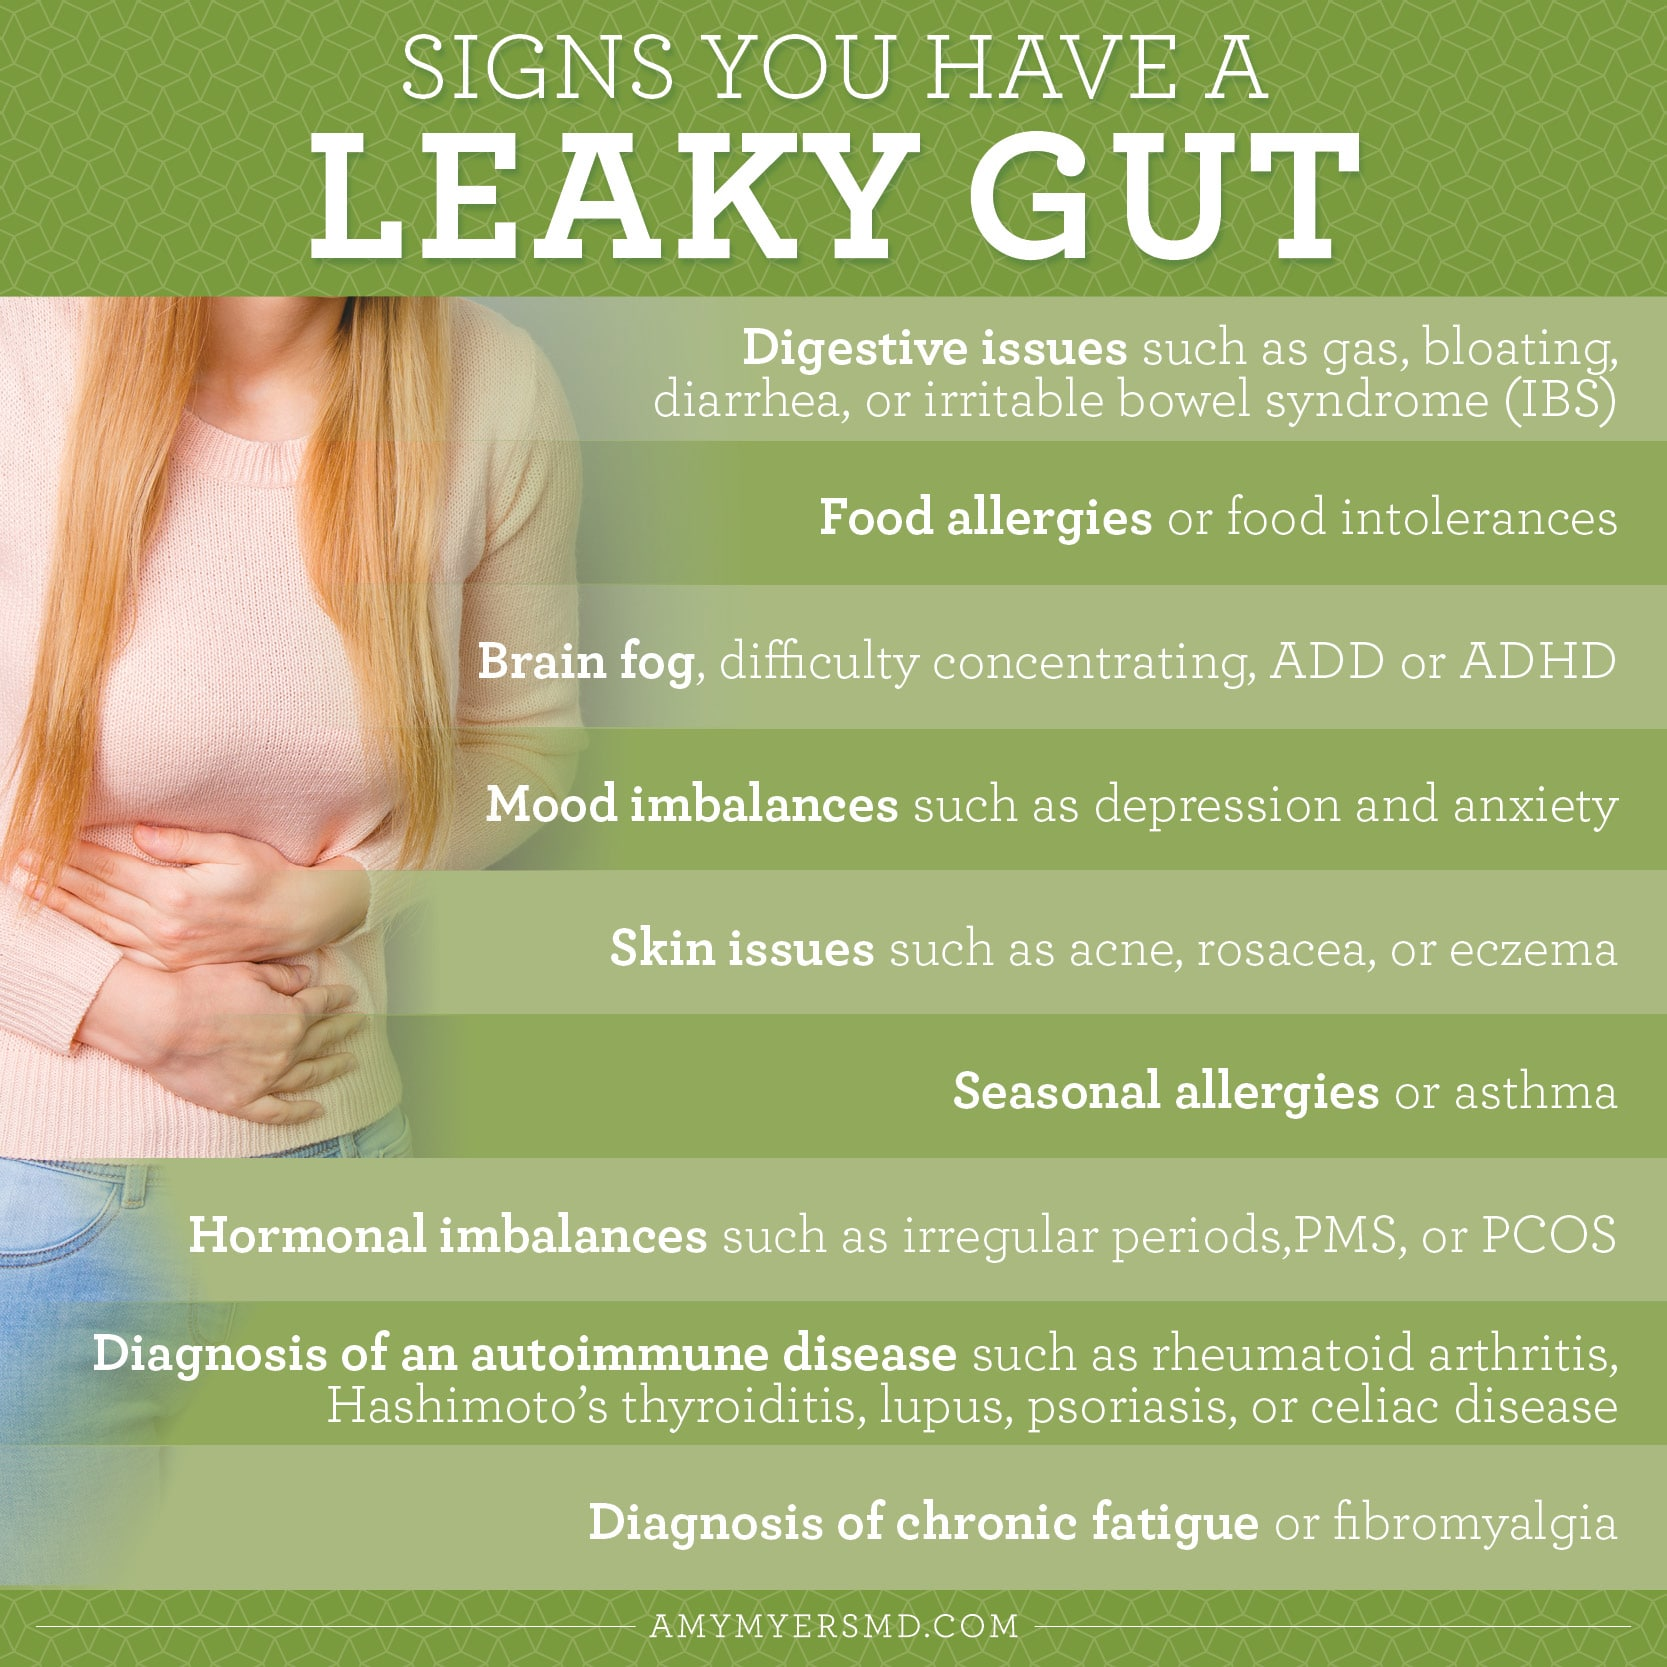 Graphic depiction of the 9 signs of leaky gut